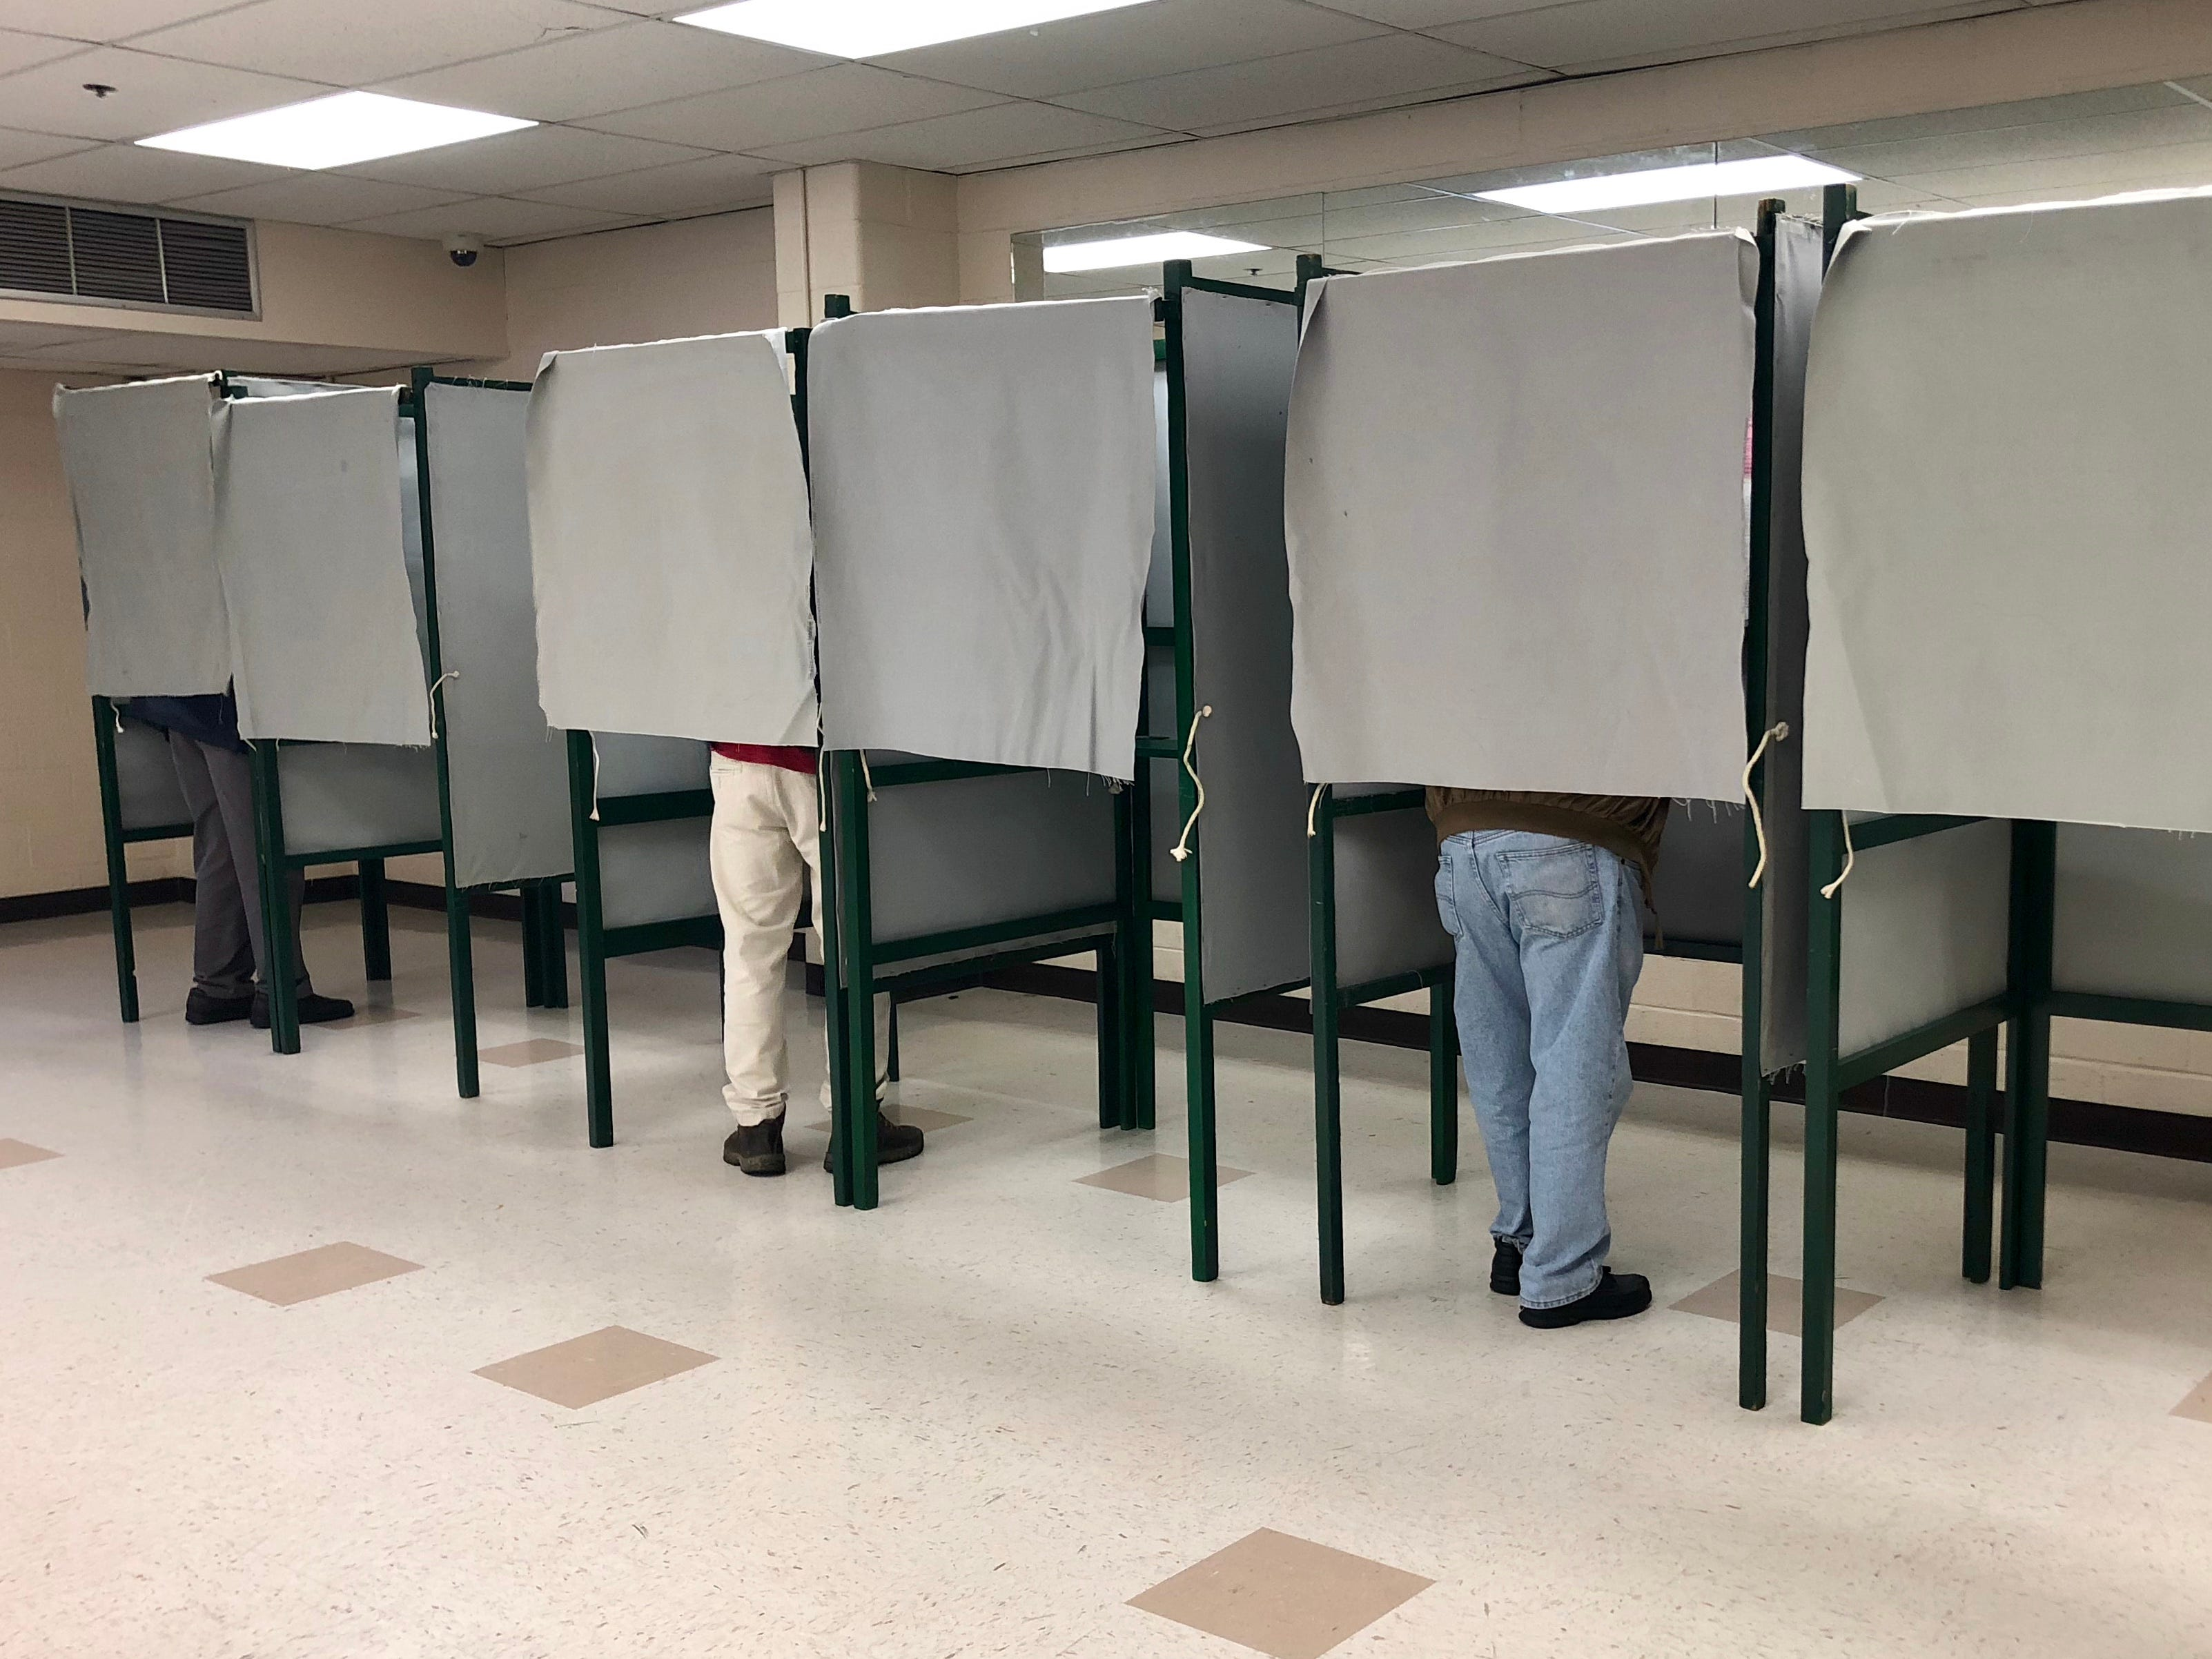 Several residents vote in the mid-term election at the Chambersburg recreation center the morning of Tuesday, Nov. 6, 2018.